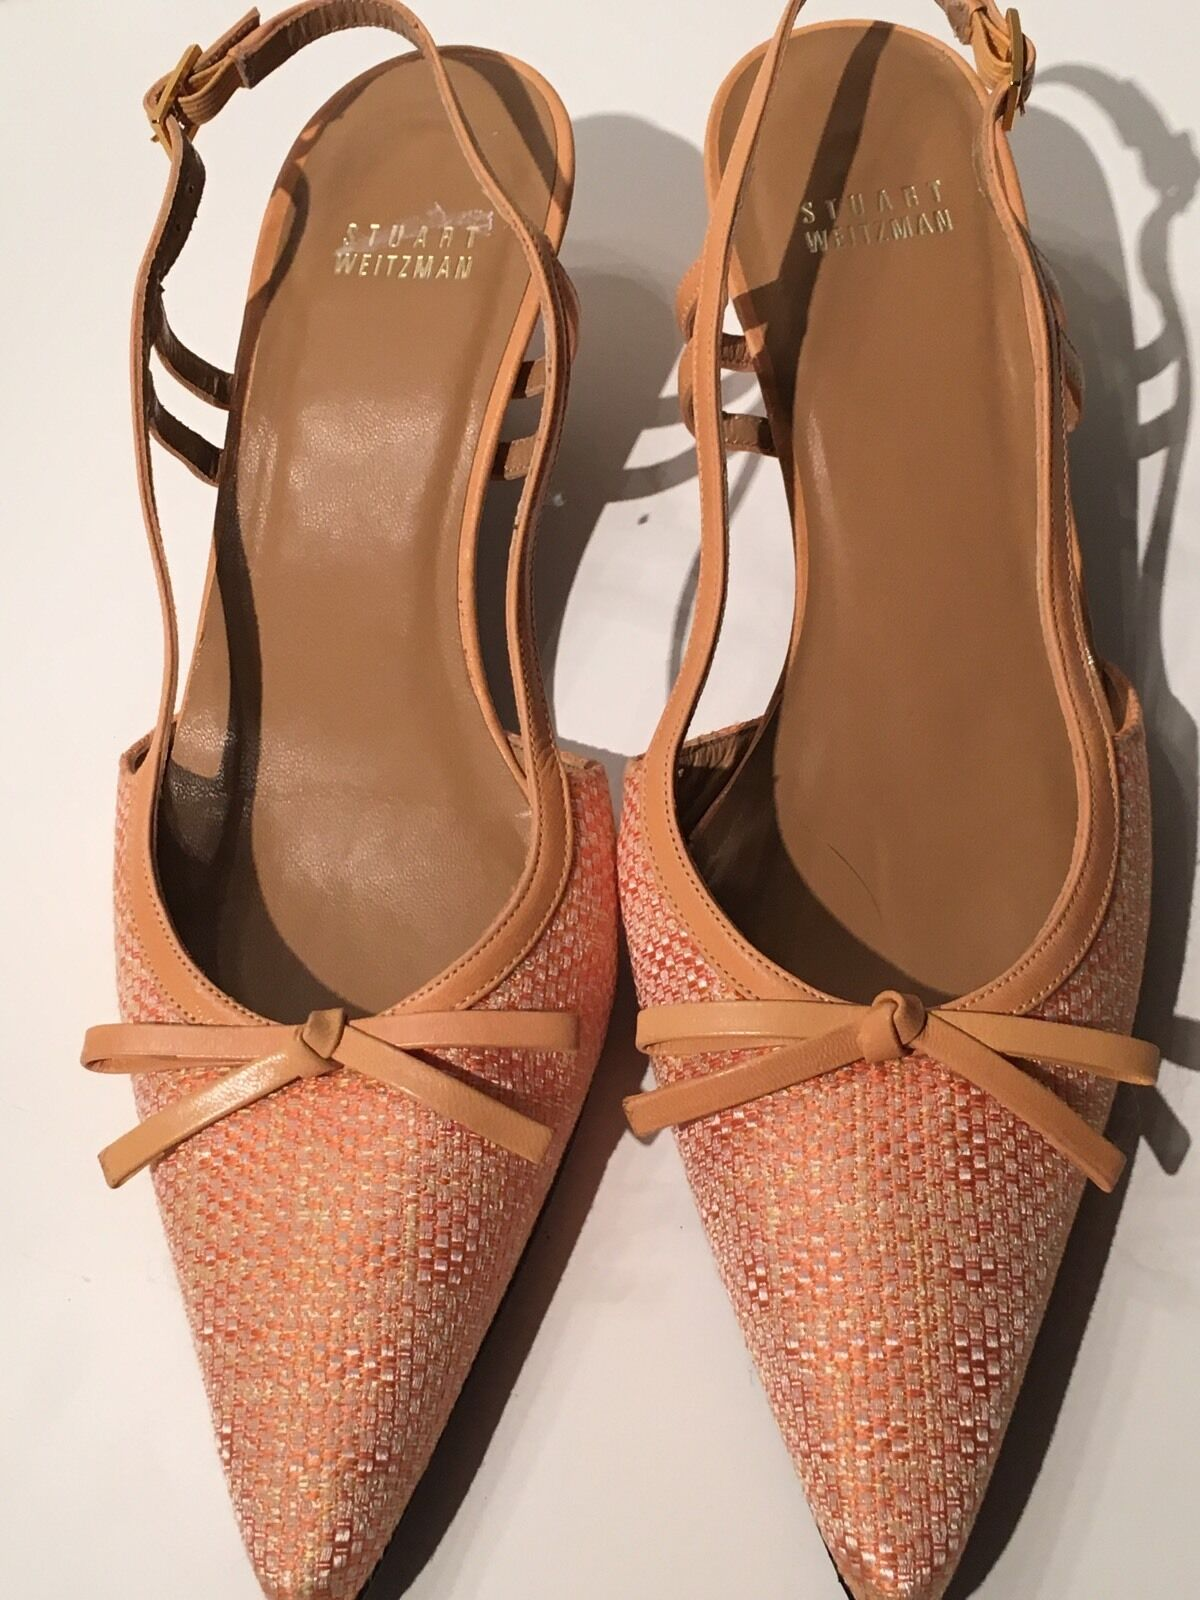 09a187a3c00b7 WEITZMAN Classic , Beige, Leather &Satin , SLINGBACK SHOES, size 8 M ...